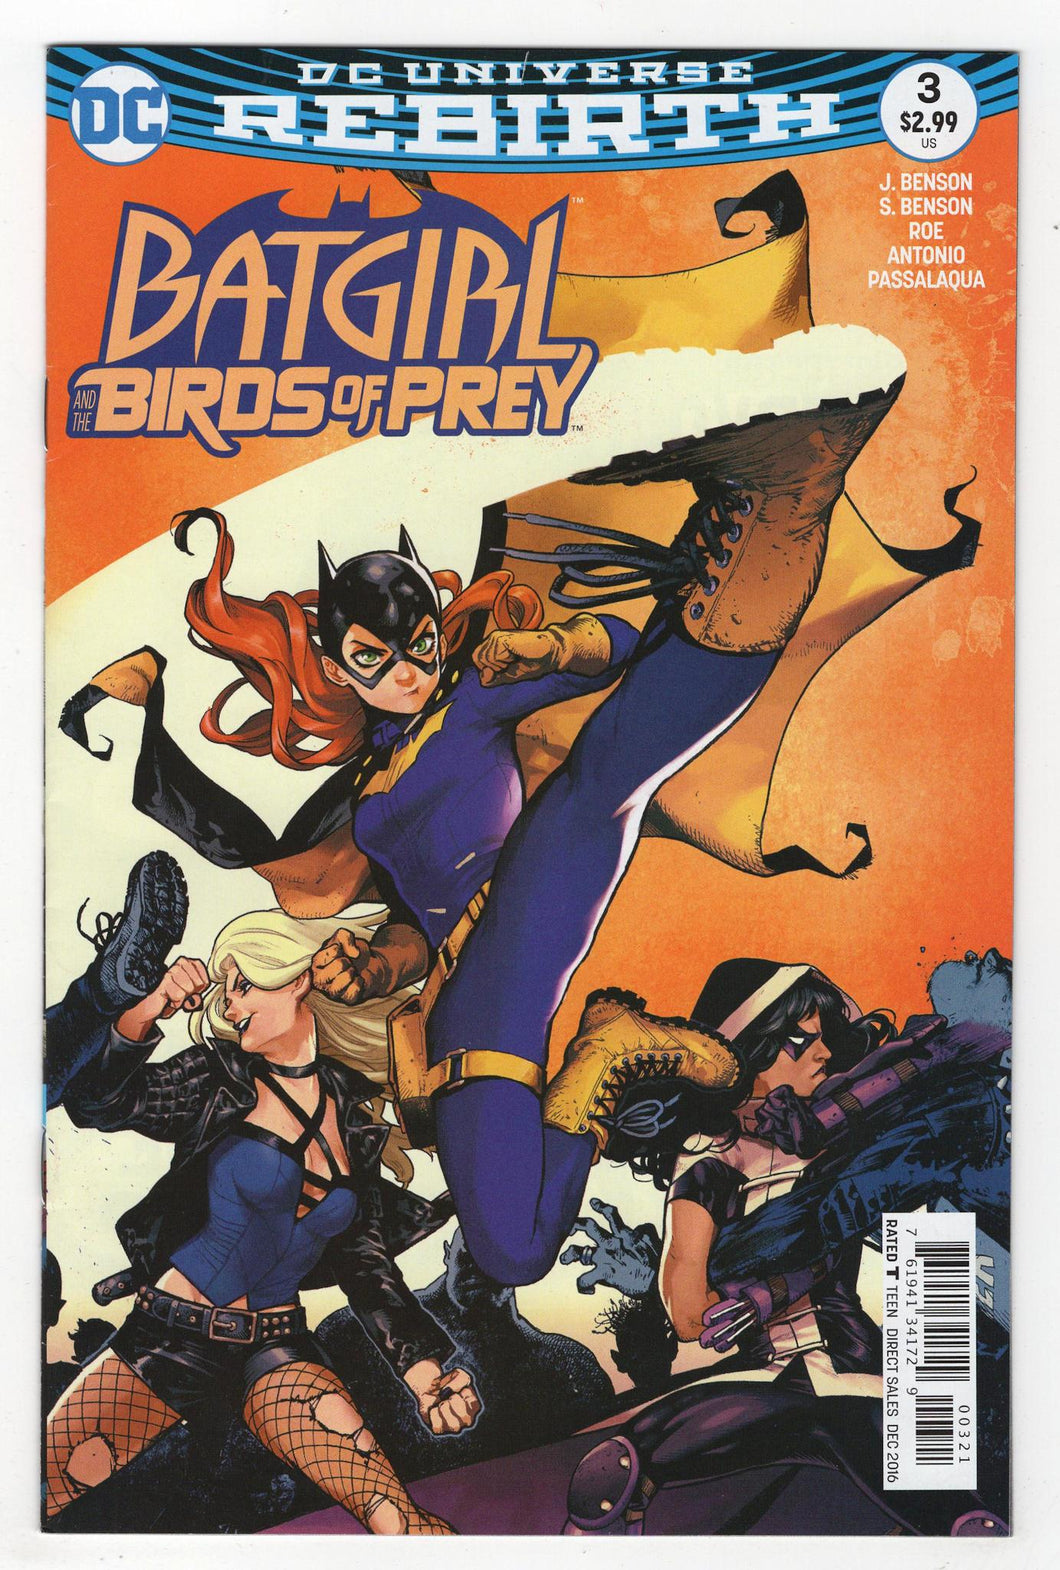 Batgirl and the Birds of Prey #3 Variant Cover Front